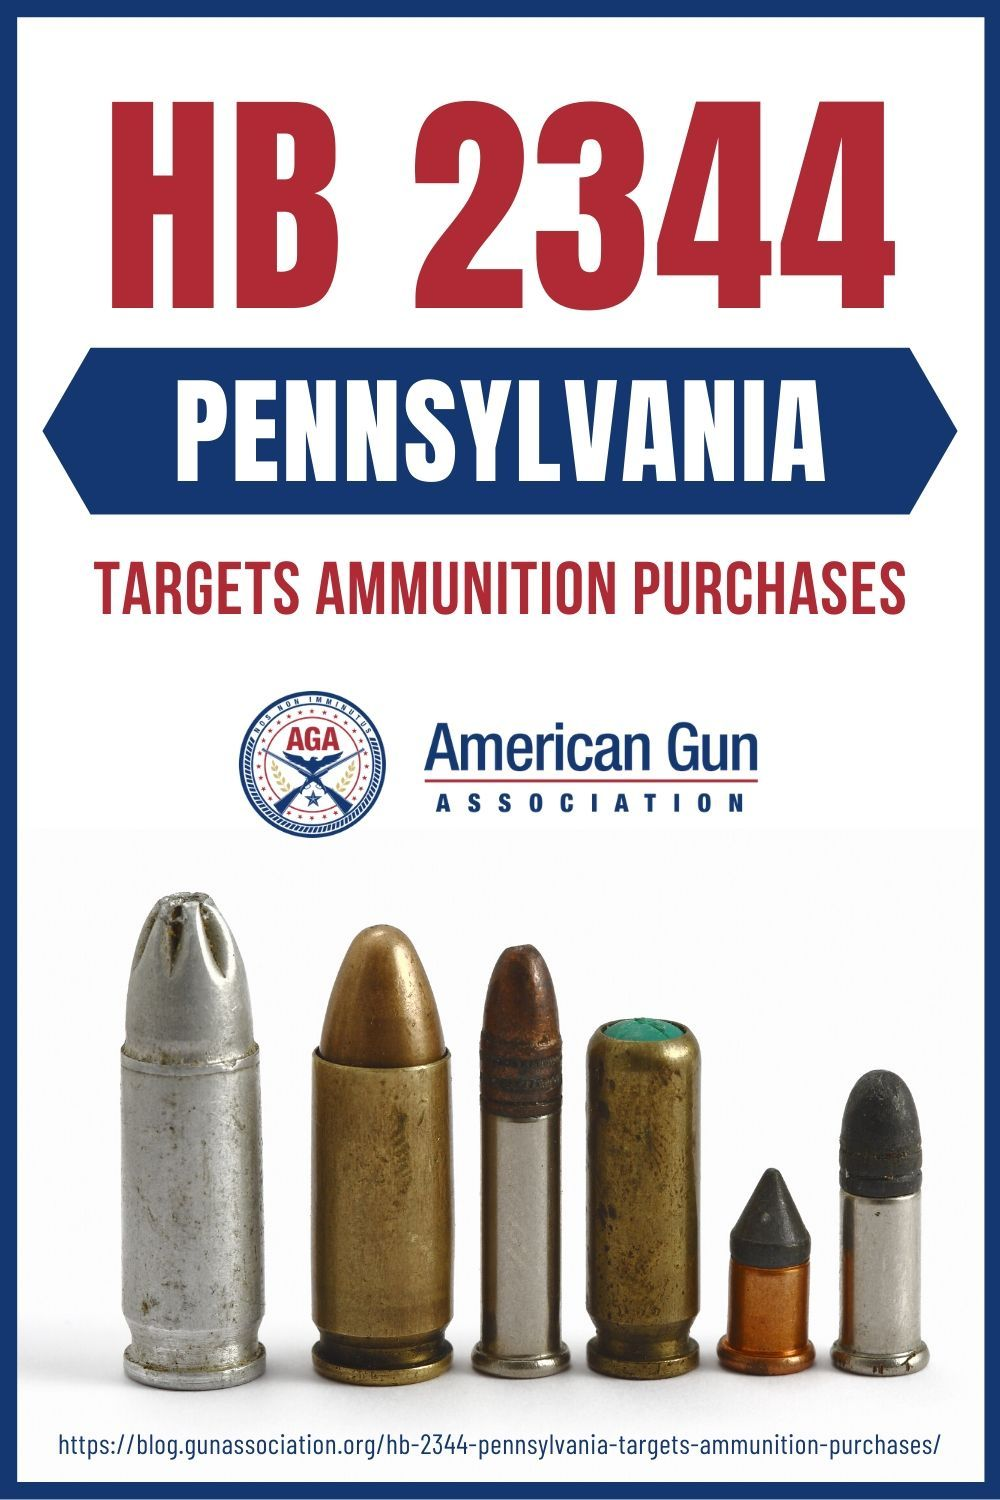 0b7034d841e73de49d3003cccc1cbe11 - How To Get A Concealed Weapons Permit In Pennsylvania